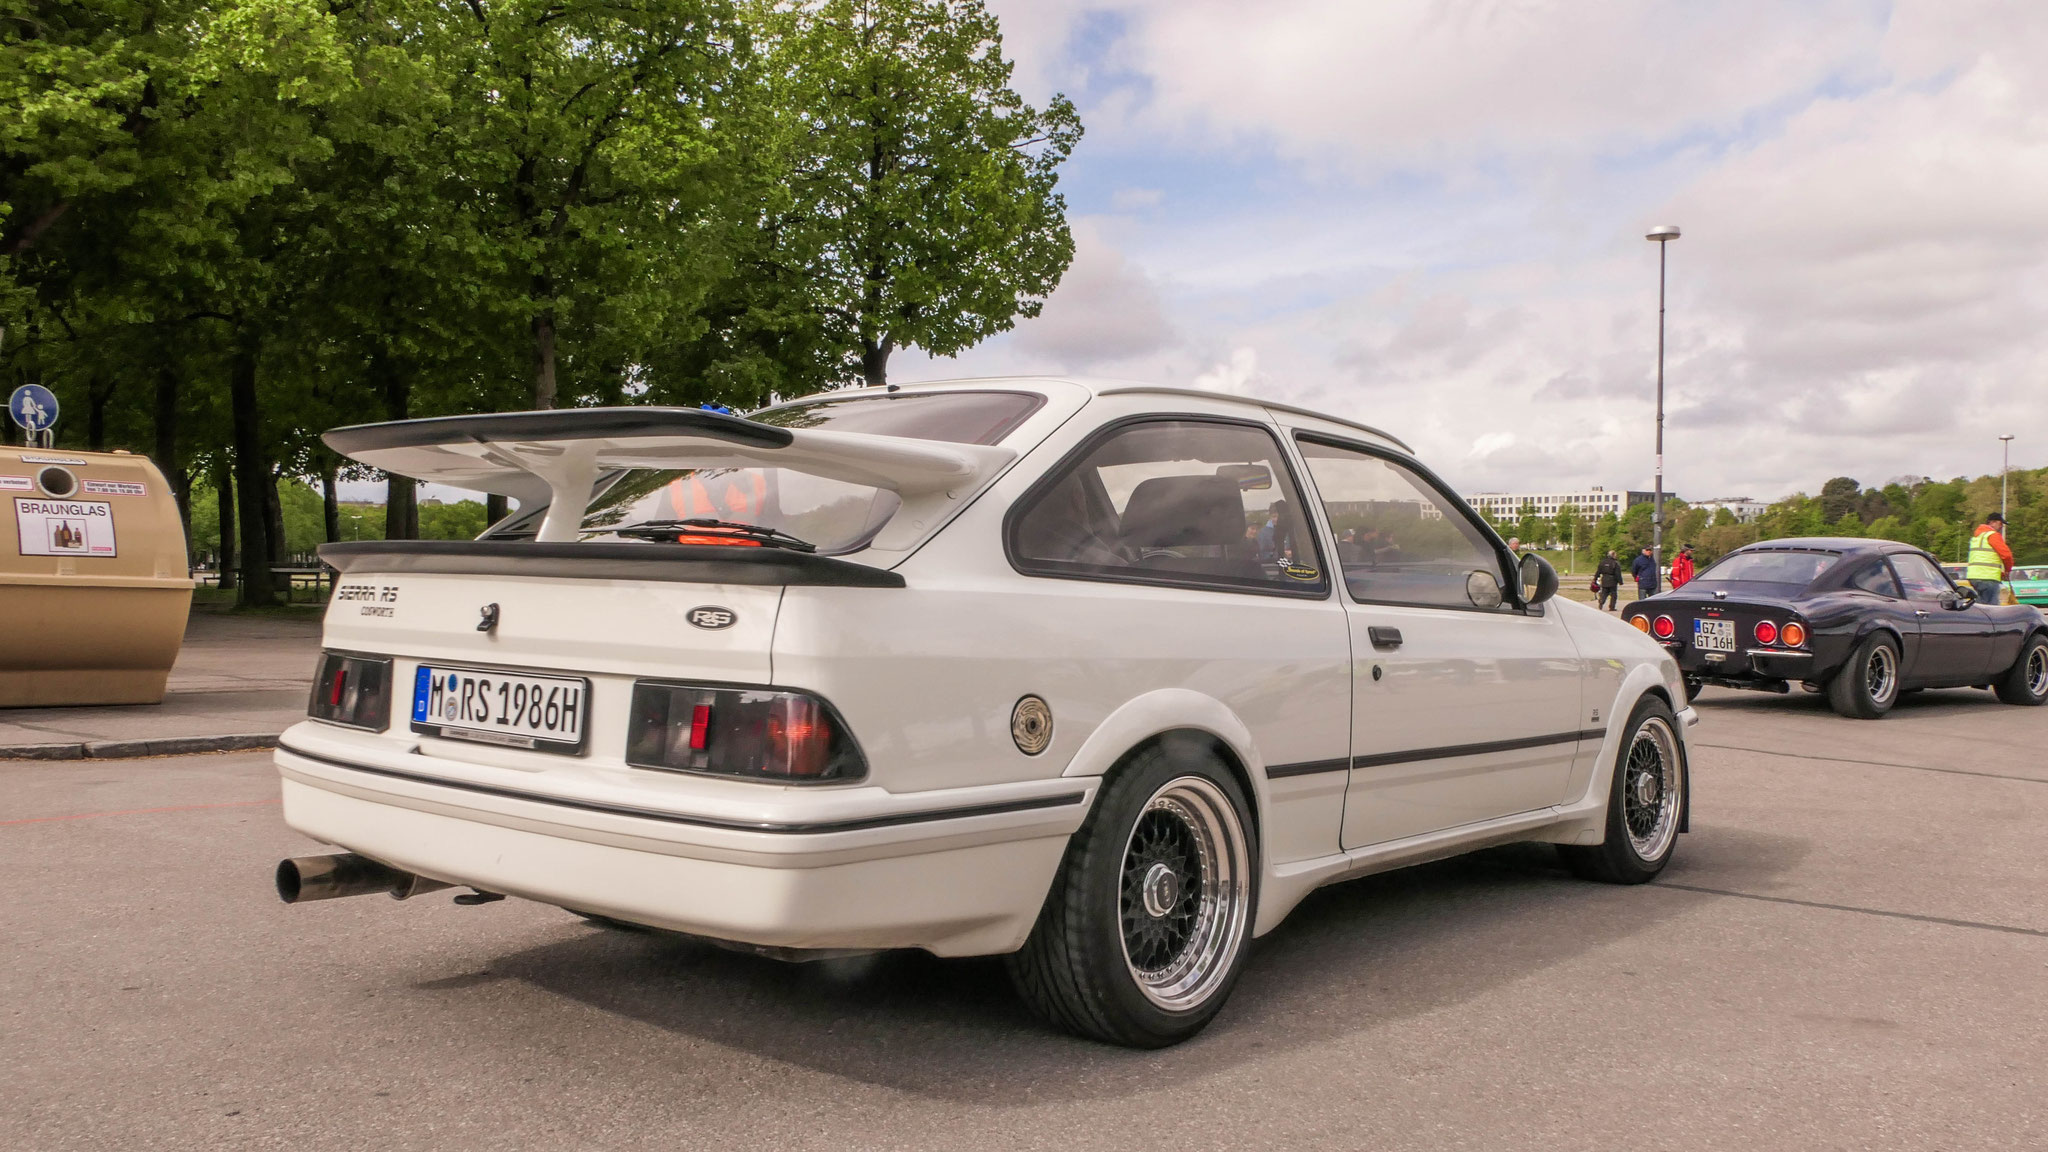 Ford Sierra RS Cosworth - M-RS-1986H